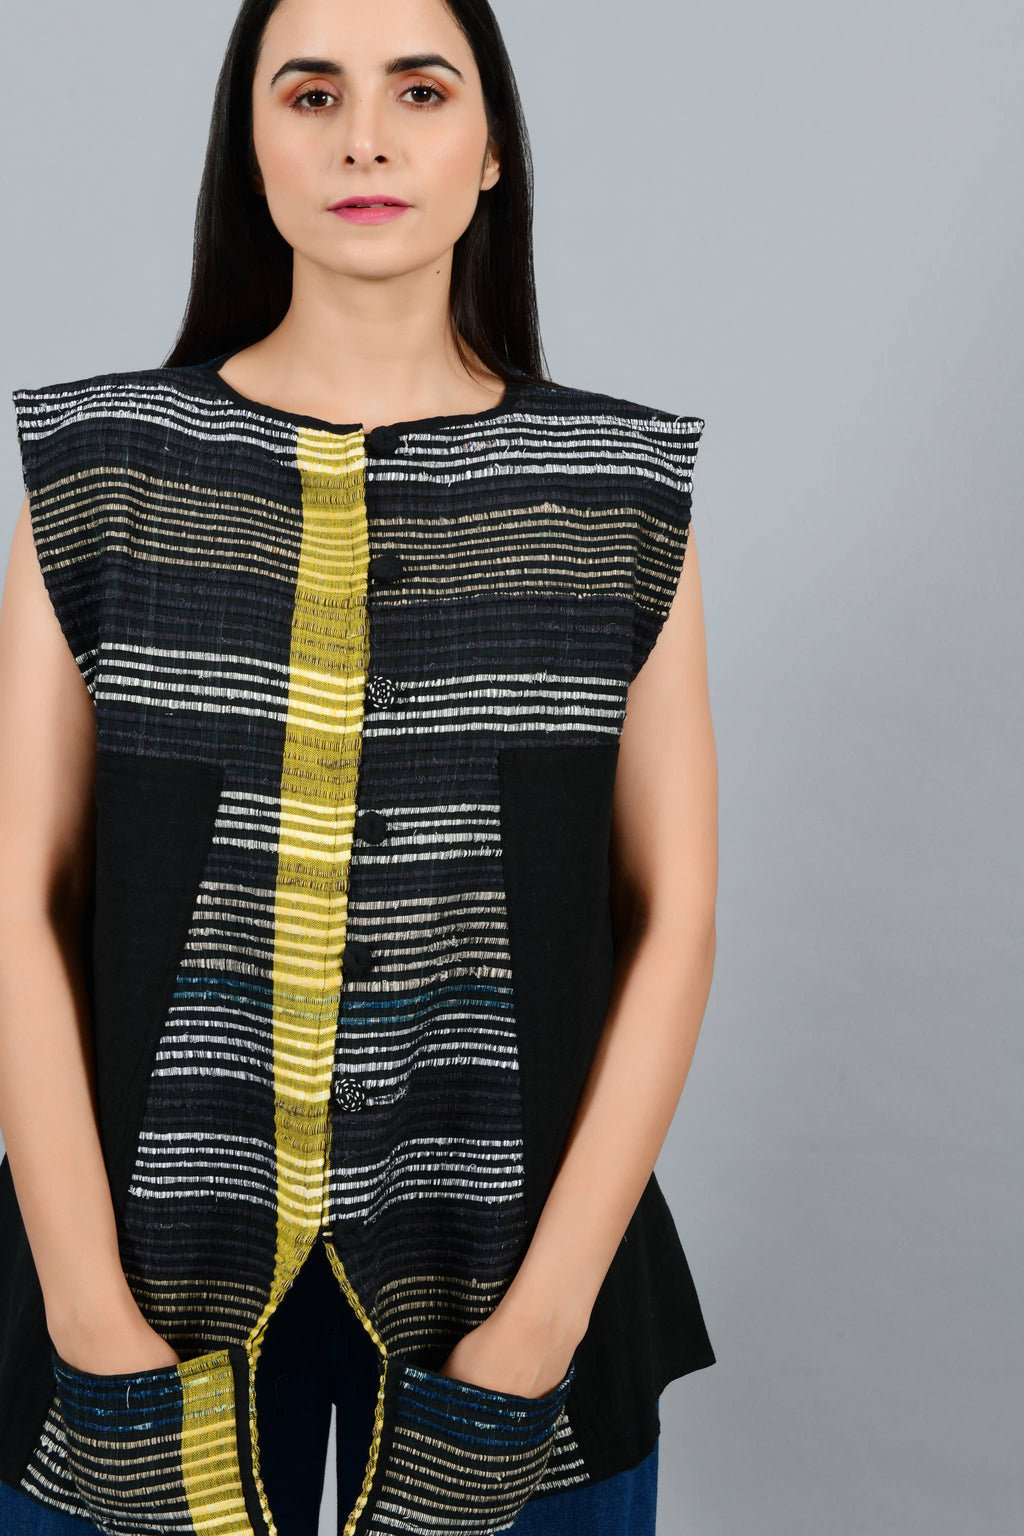 Close Up pose of an Indian Womenswear female model wearing black upcycled sleeveless jacket with a yellow stripe made with handspun and handwoven cotton by Cotton Rack.